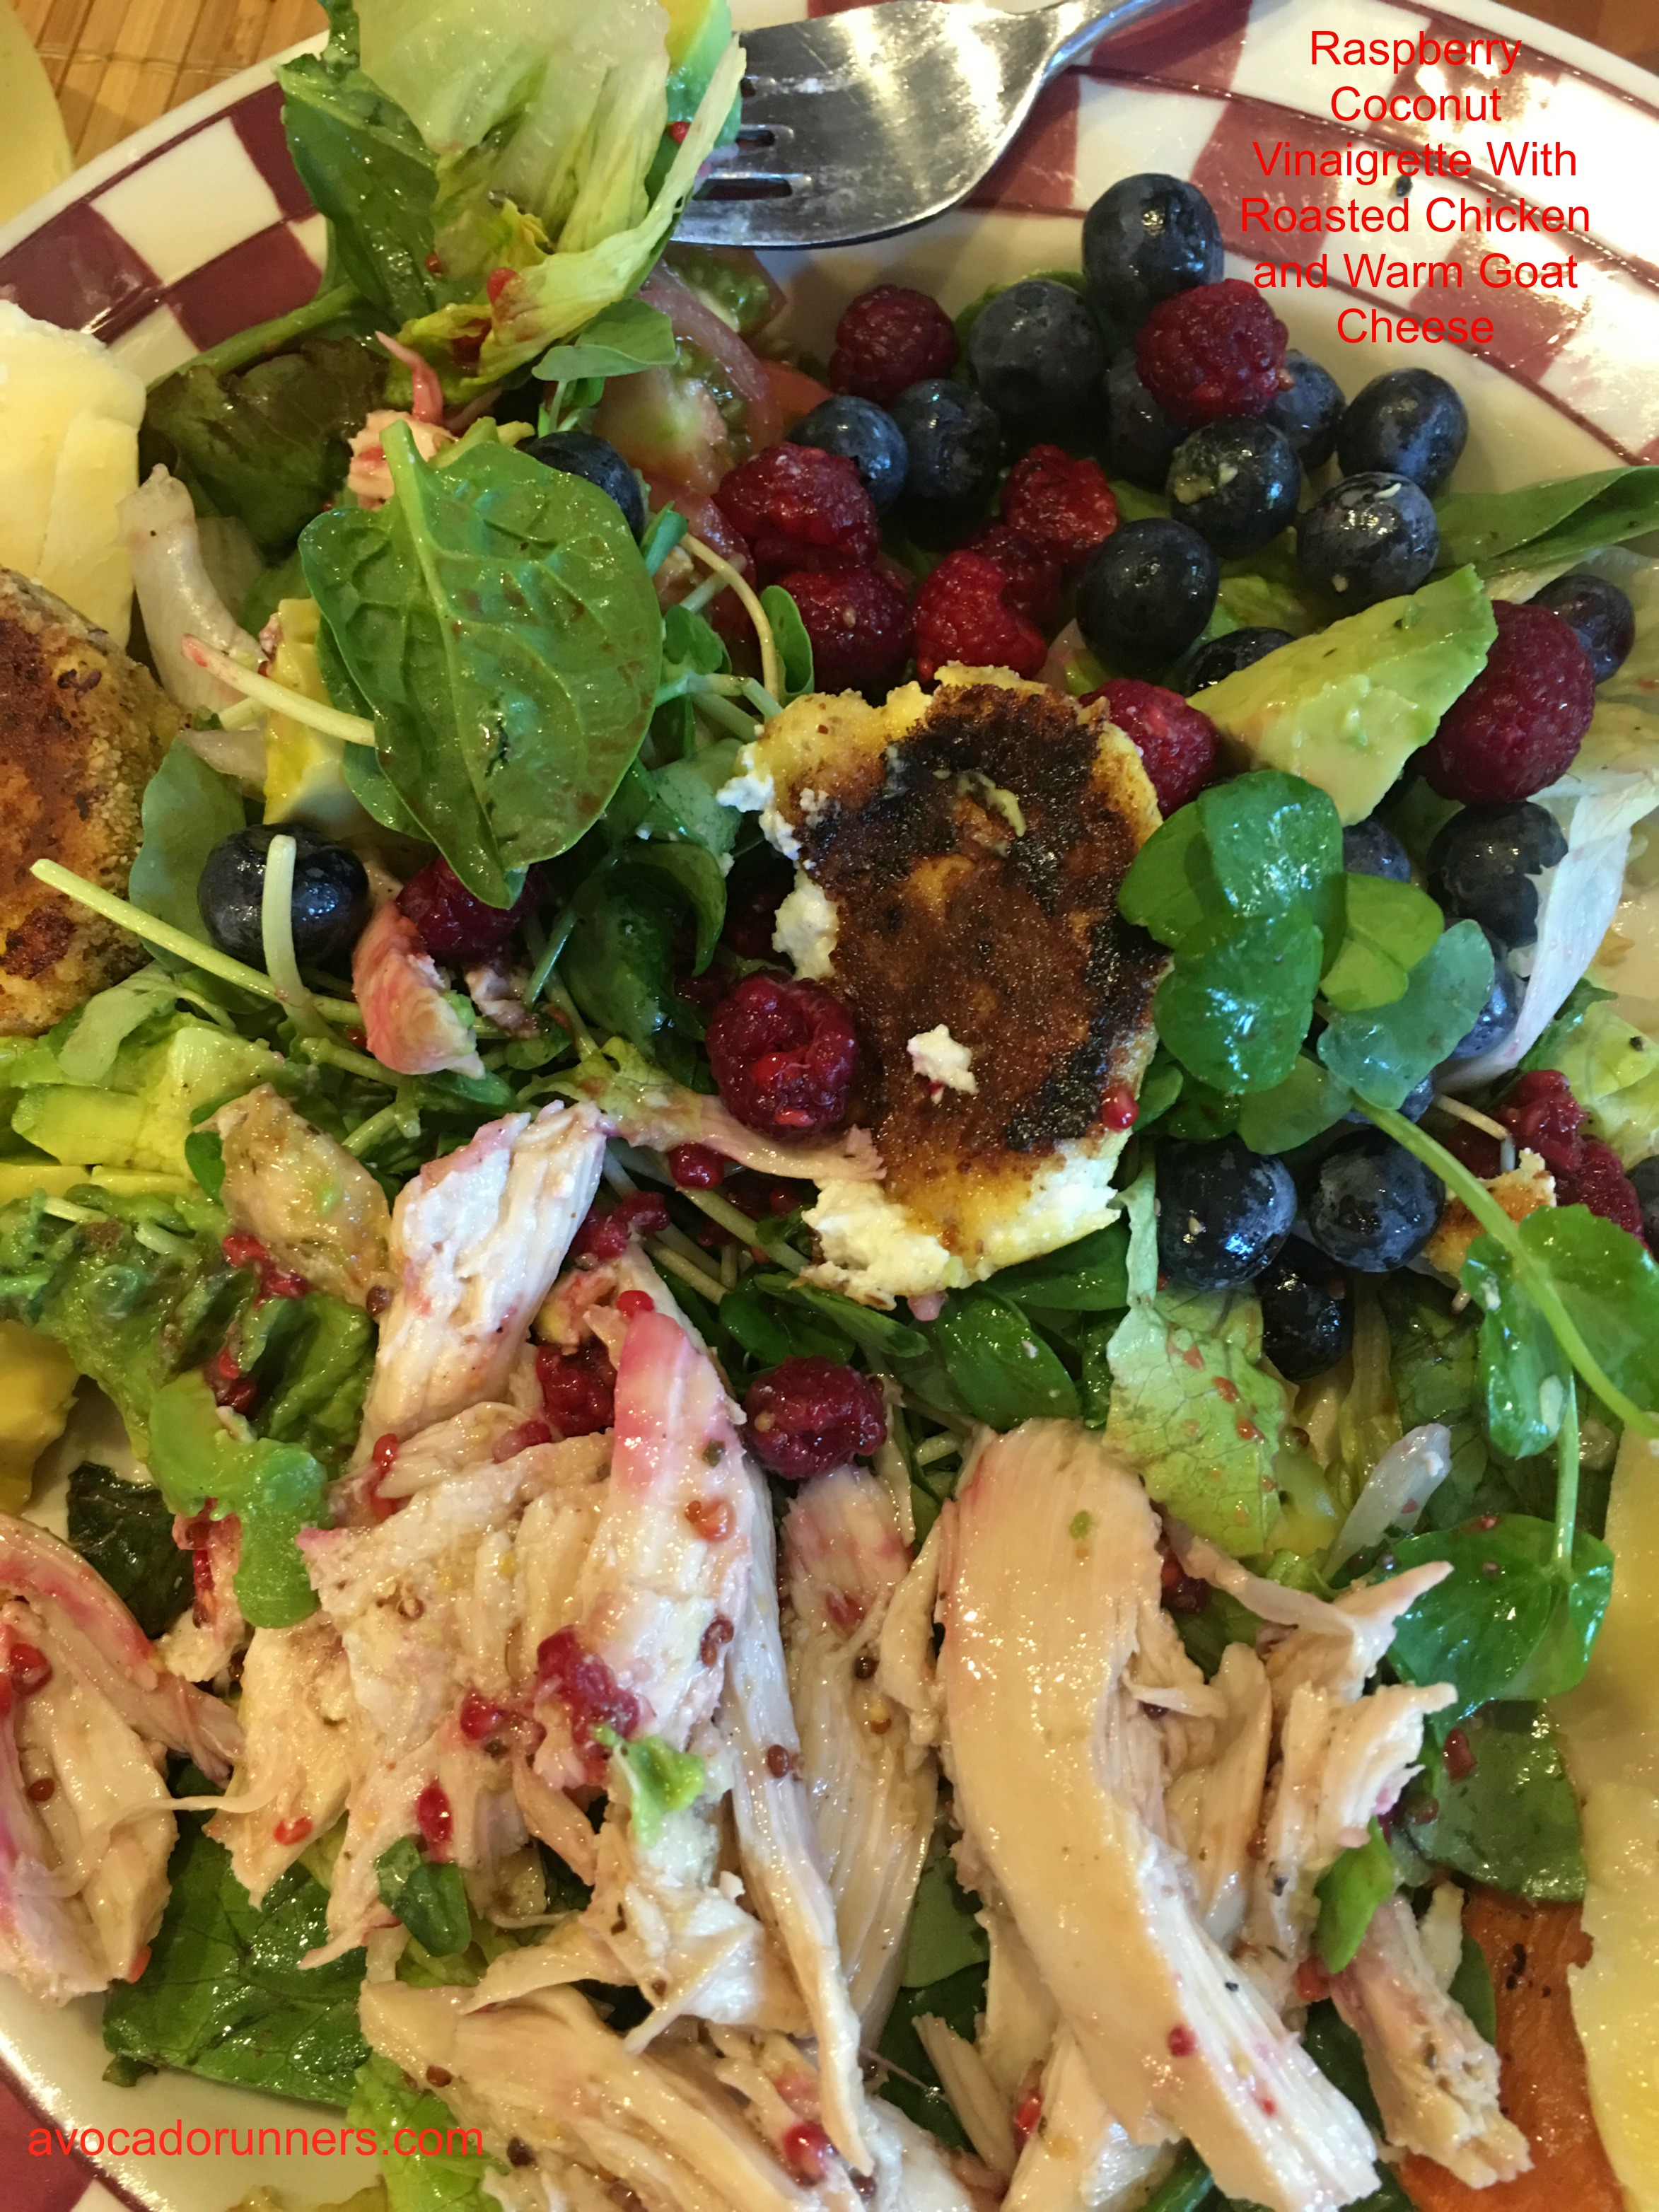 Raspberry Coconut Vinaigrette with Roasted Chicken and Warm Goat Cheese